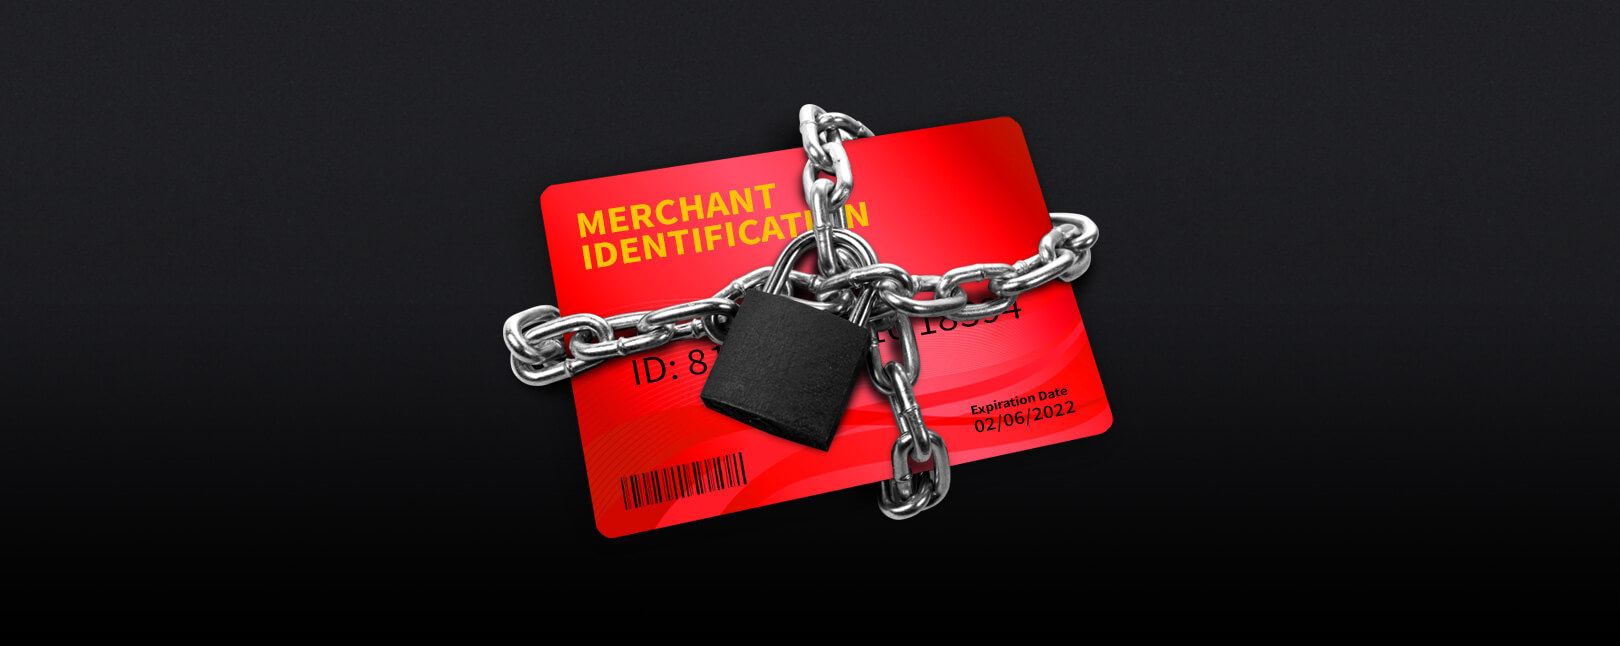 Merchant Identification Number - What's My Merchant ID & How